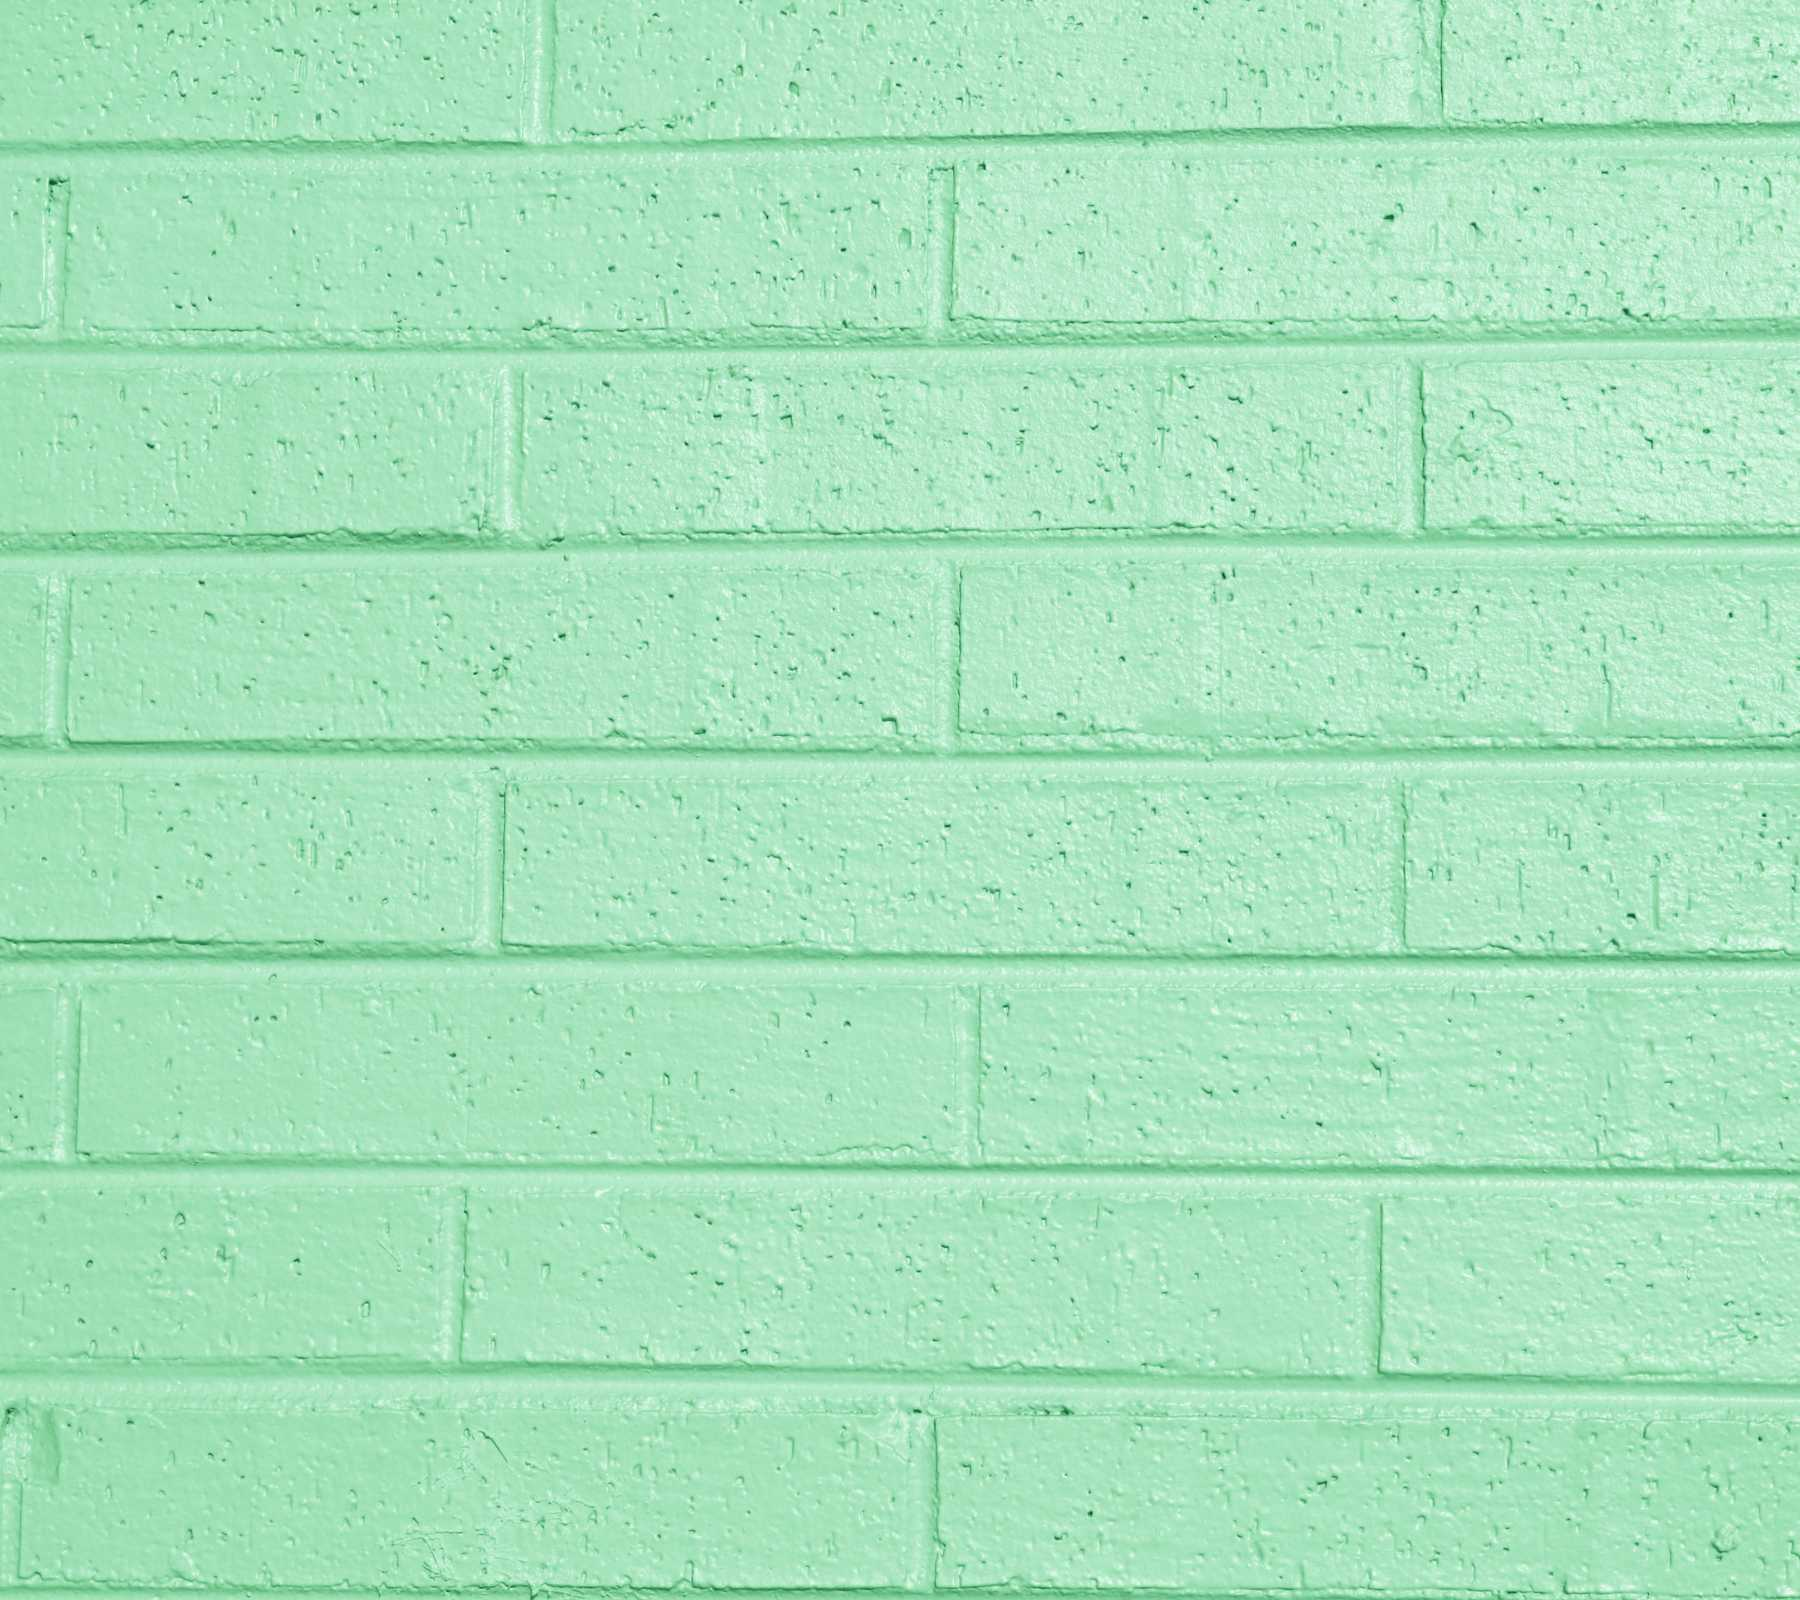 Pistachio green painted brick wall background image for Green wallpaper for walls